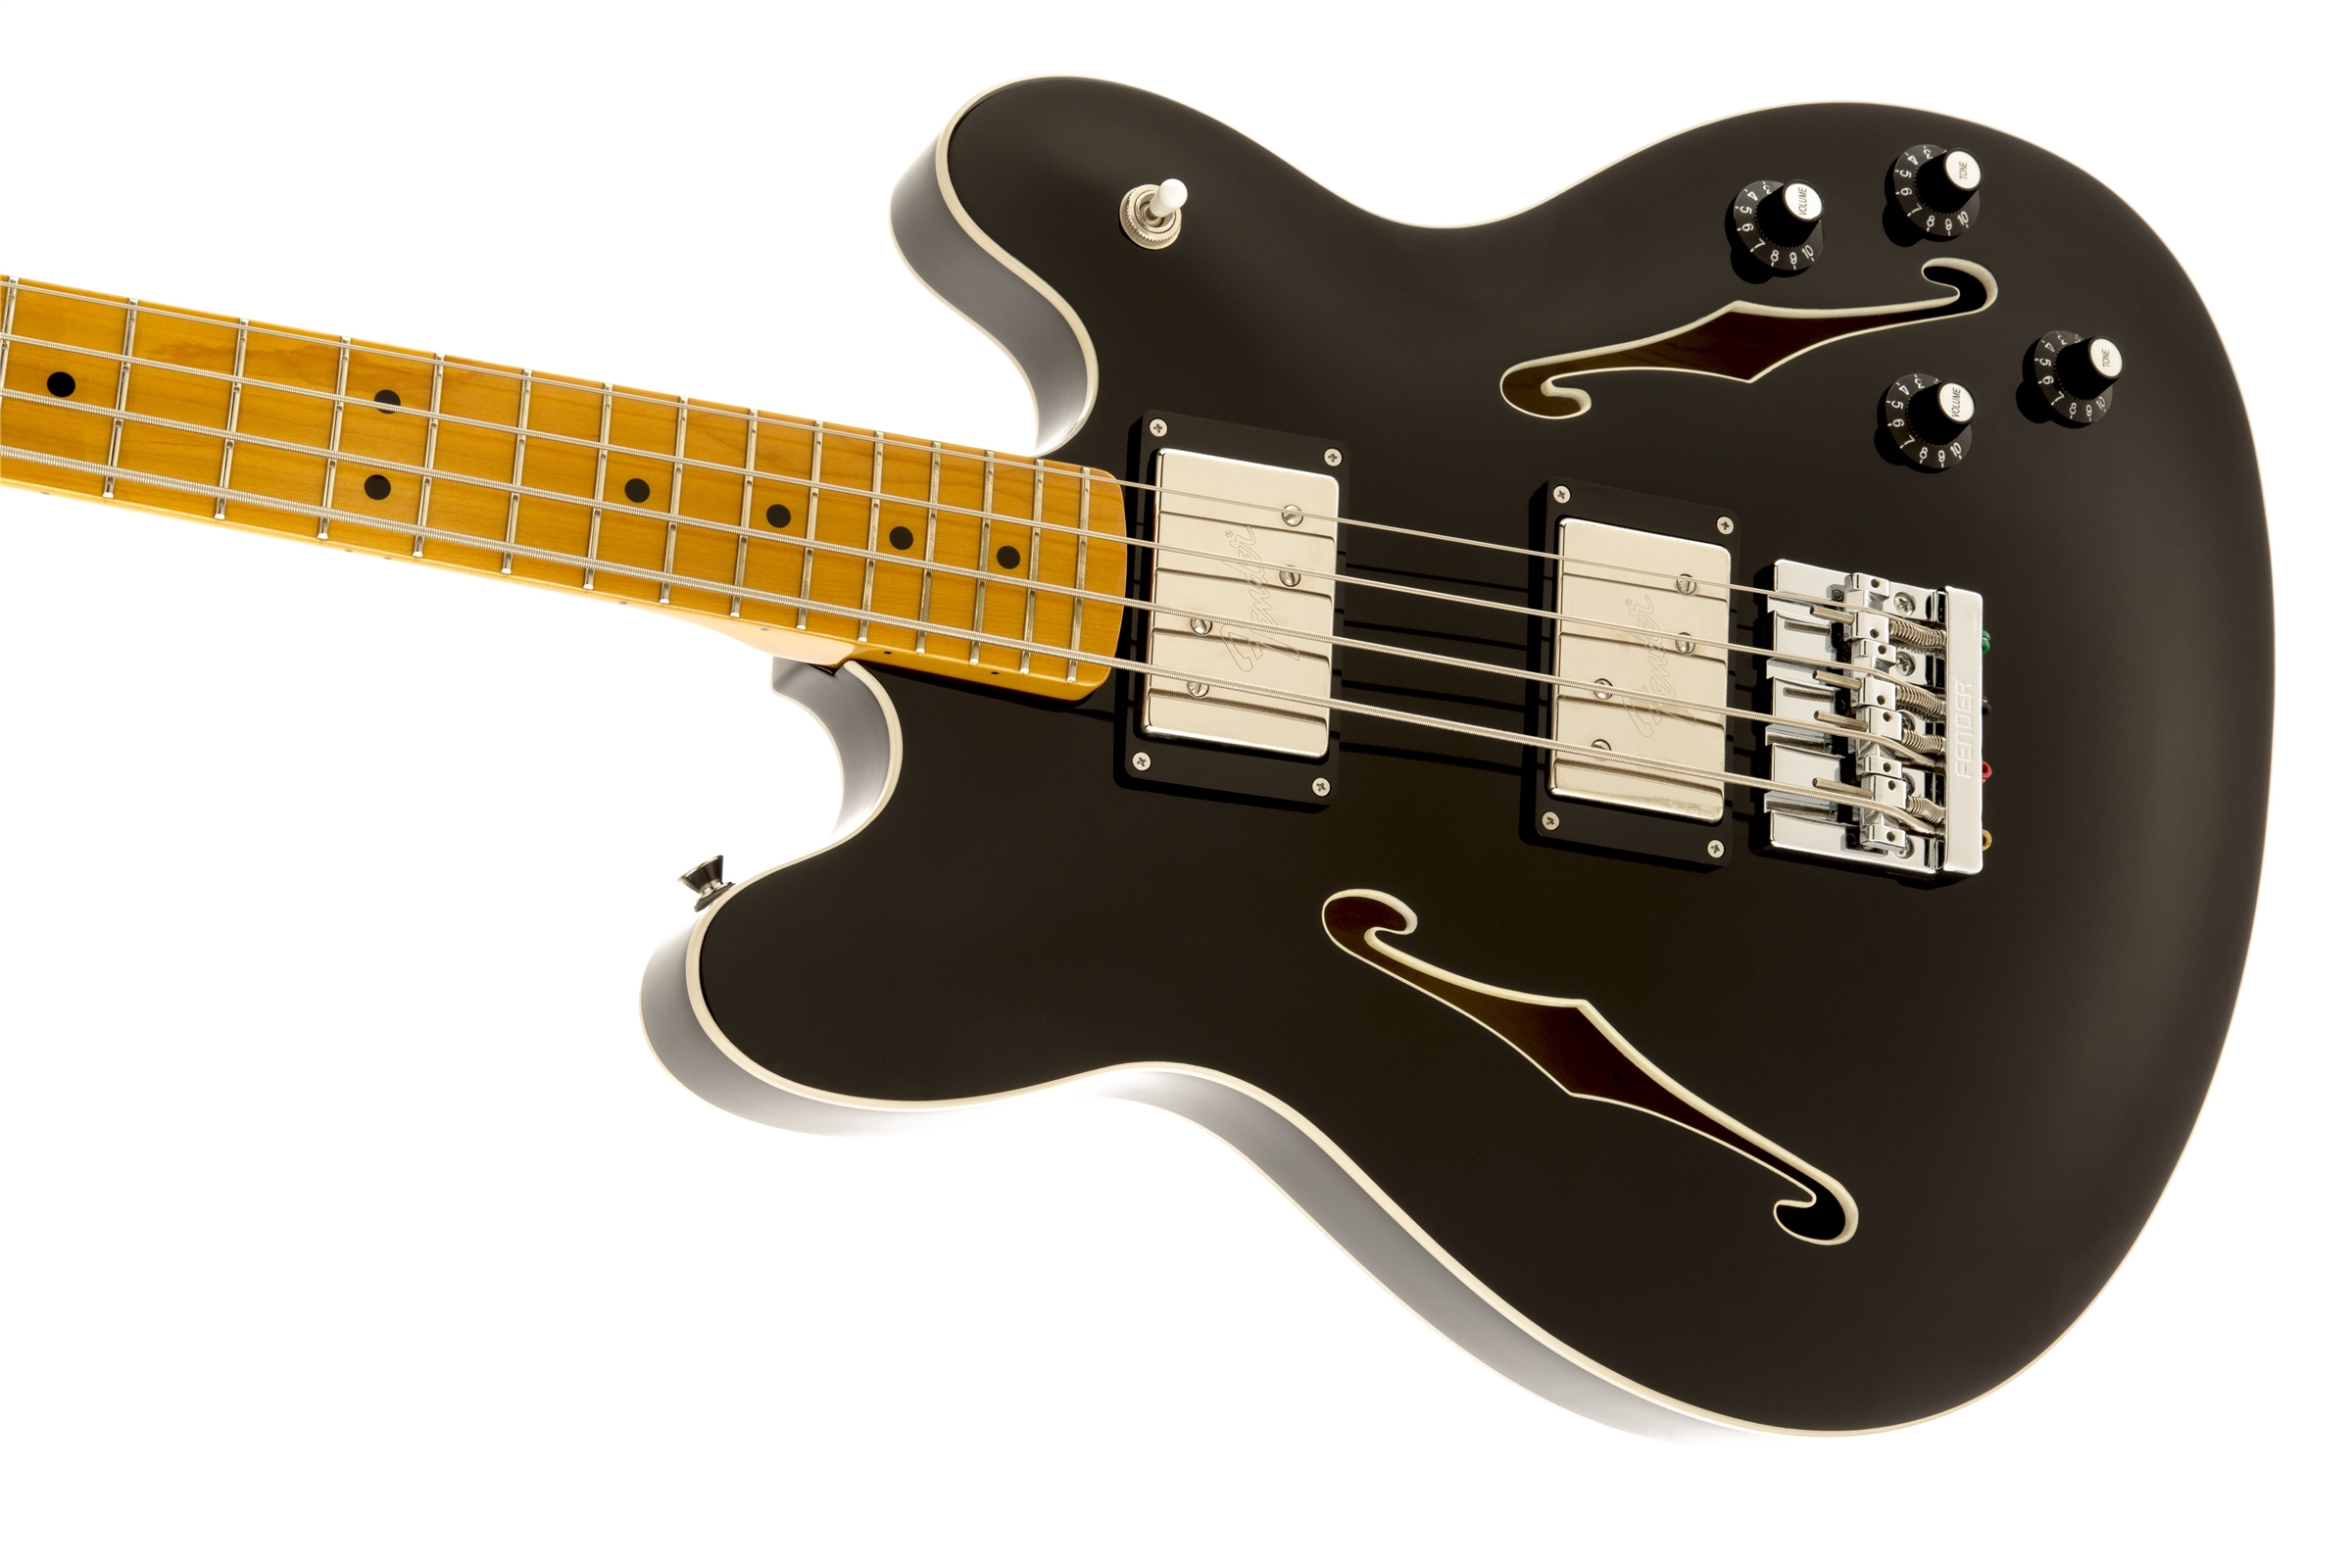 Starcaster 174 Bass Fender Bass Guitars